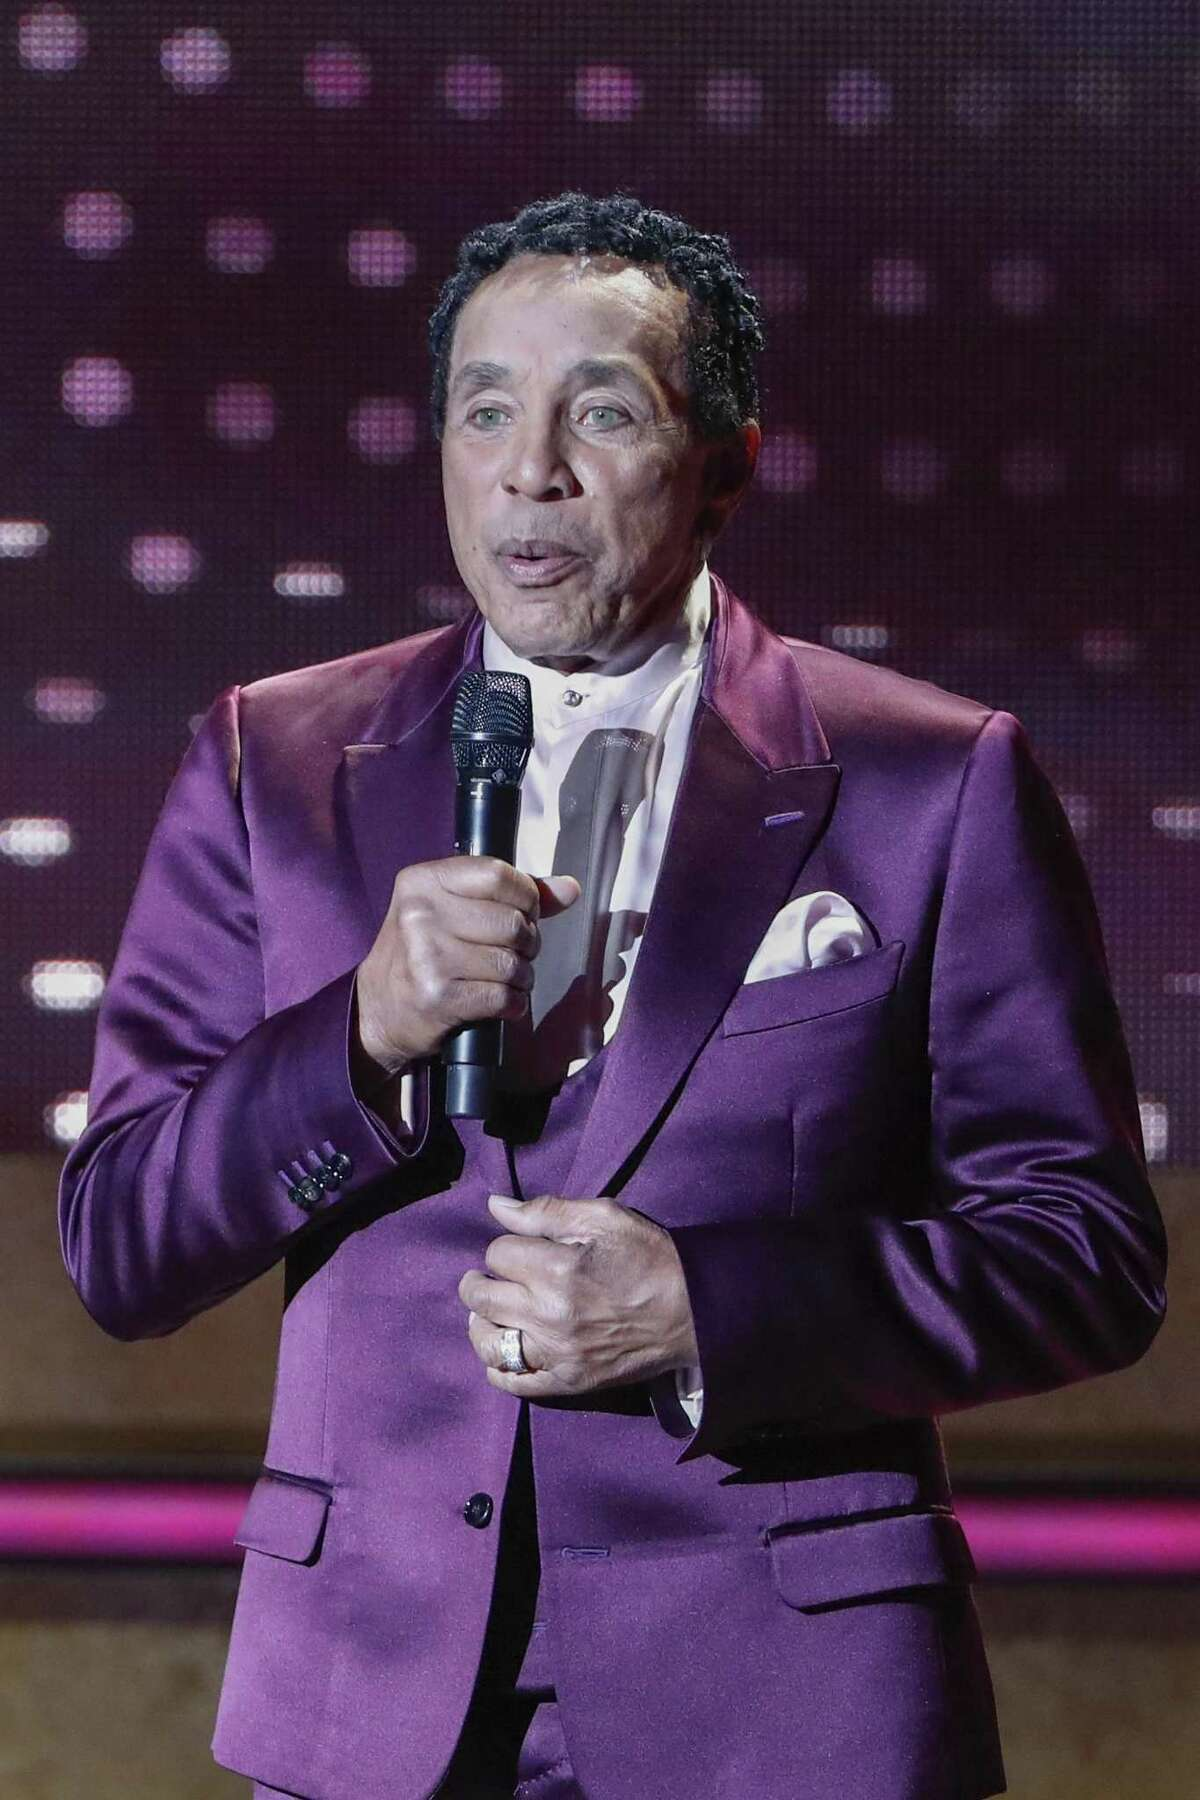 Smokey Robinson at a Nashville event in October.